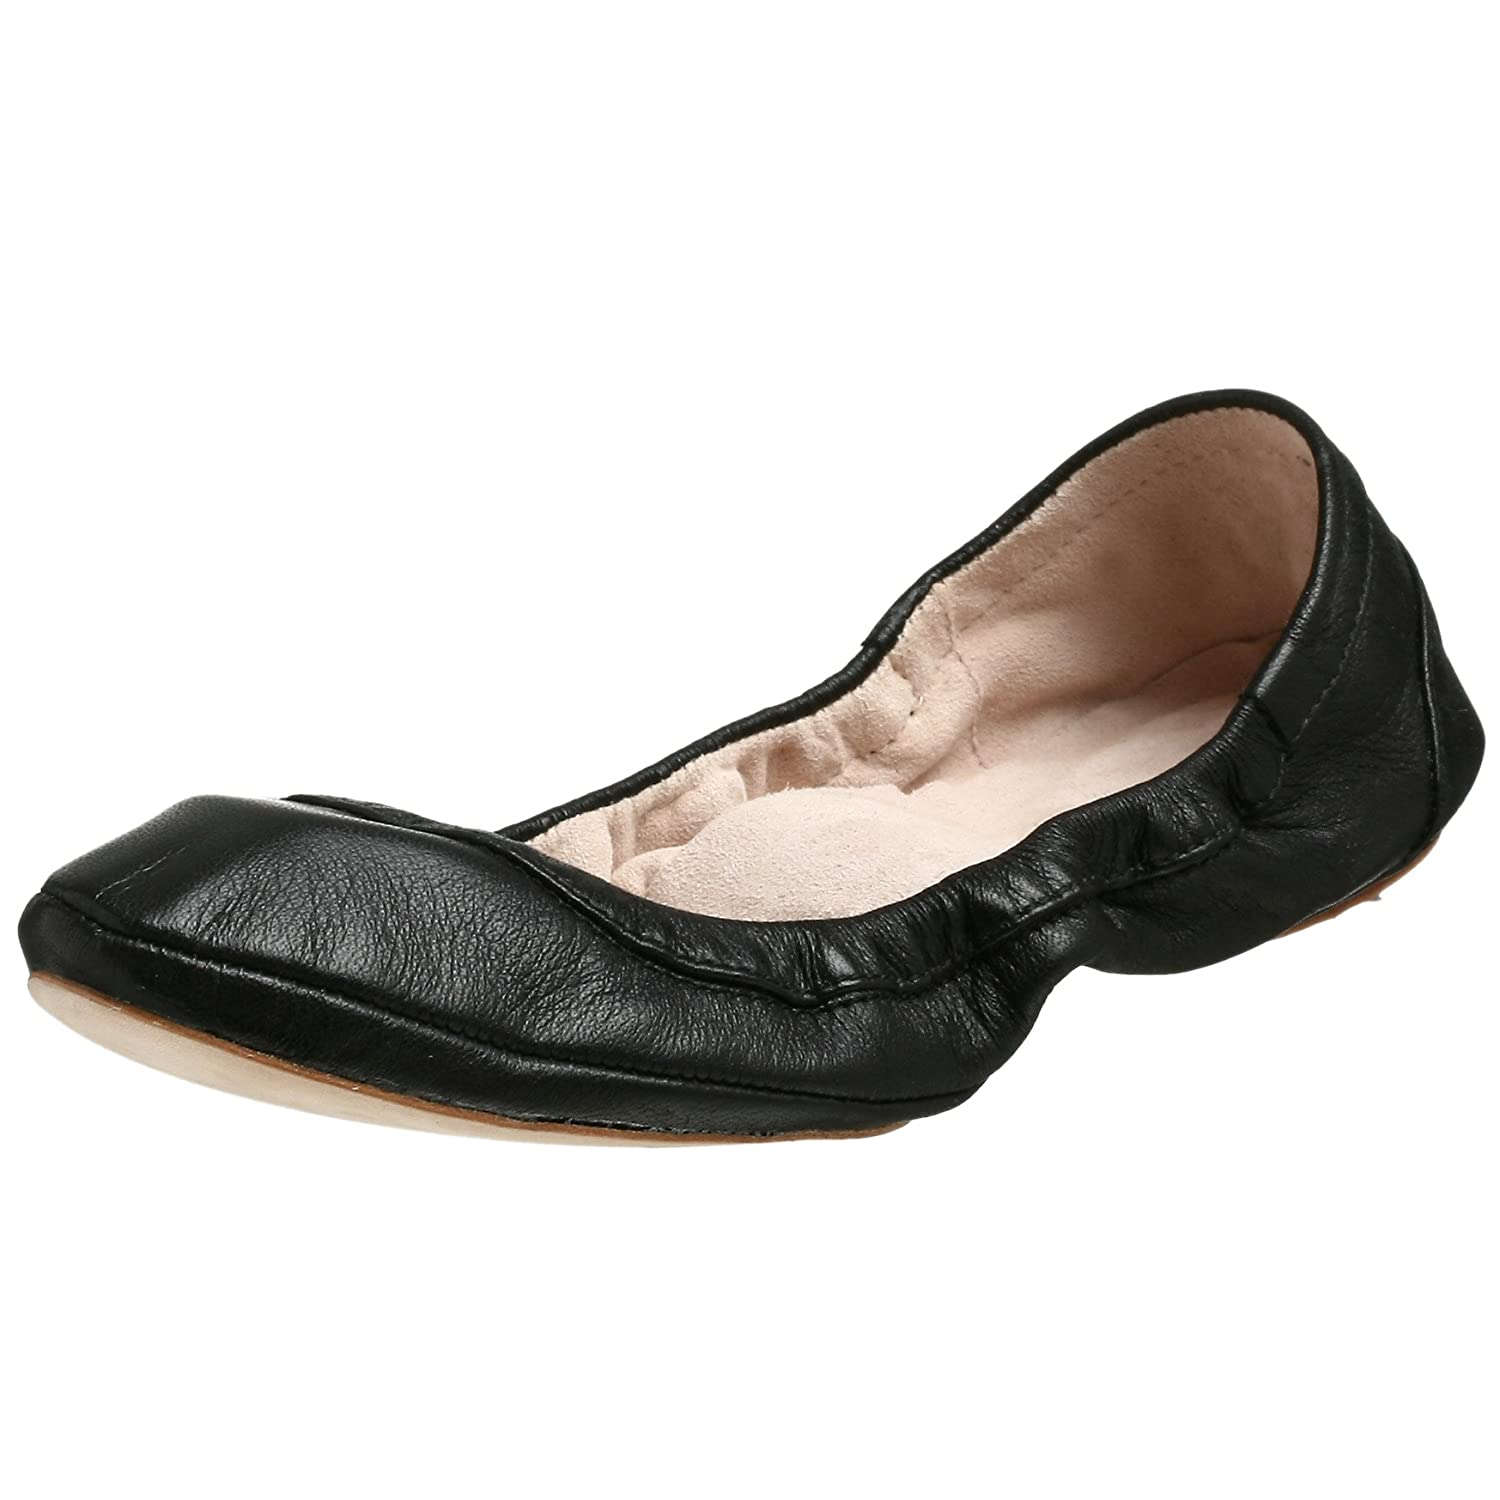 Bloch London DD Roll Up Ballet Flat - Free Overnight Shipping & Return Shipping: Endless.com from endless.com